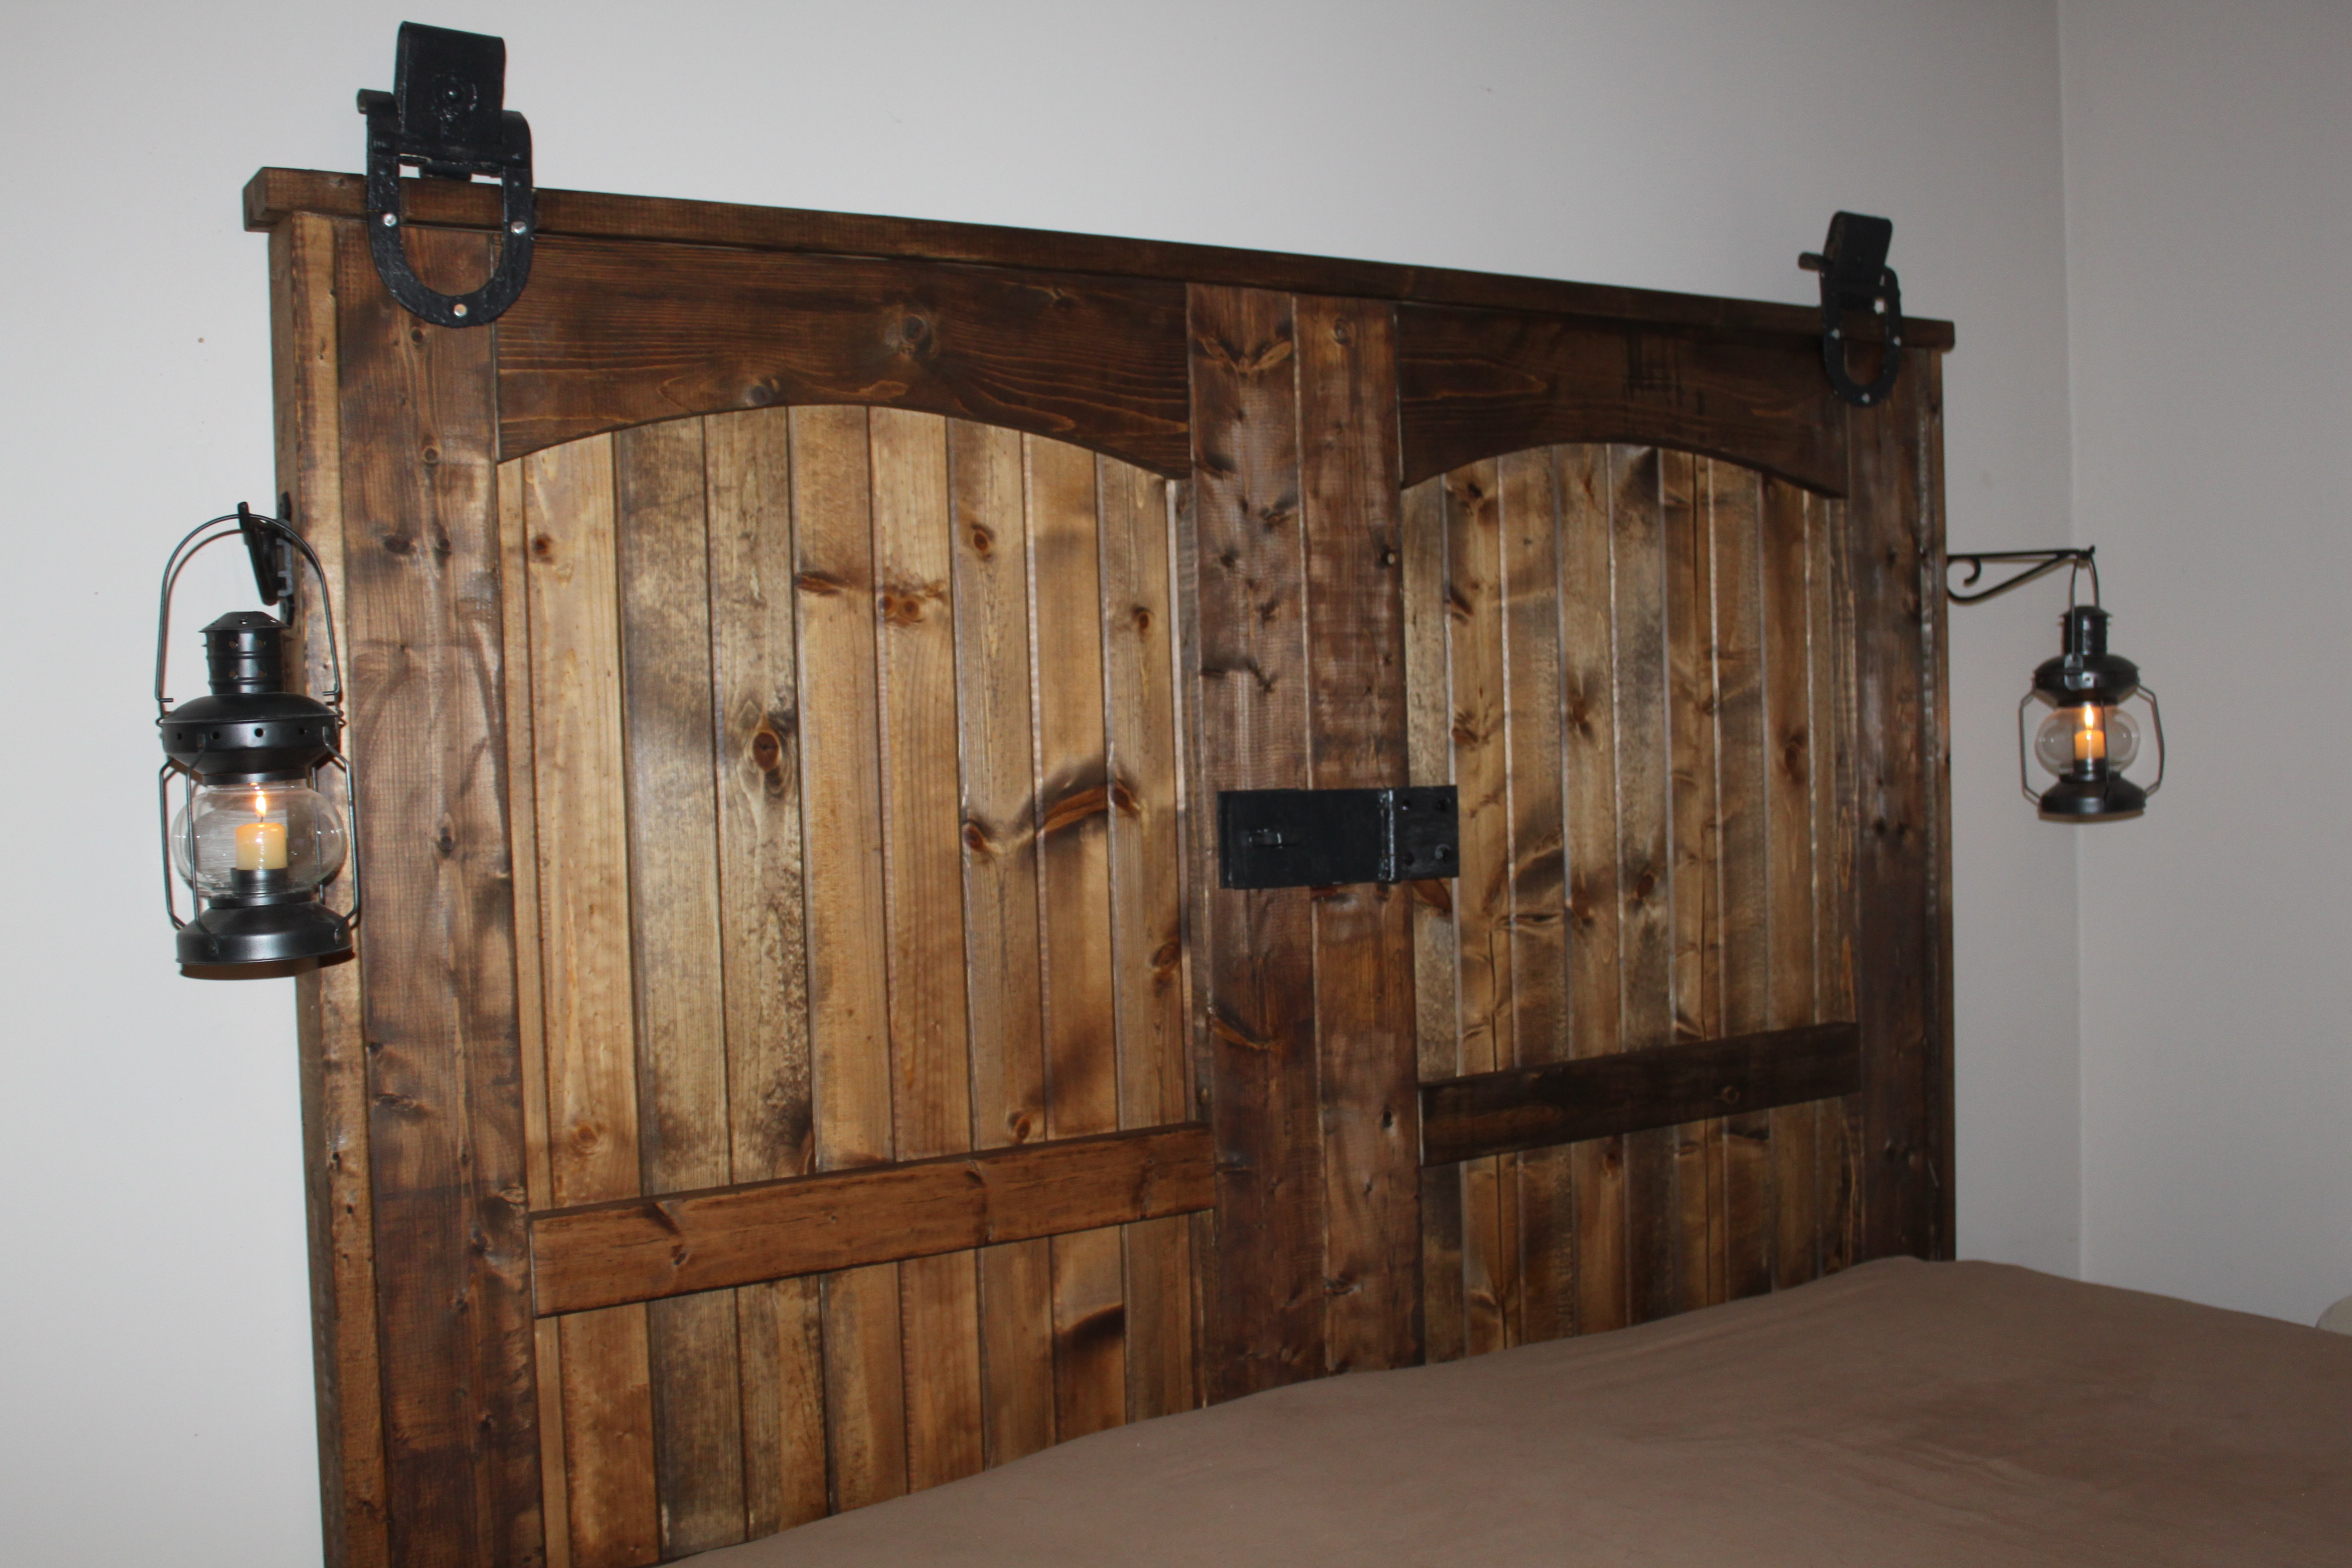 40 Rustic Home Decor Ideas You Can Build Yourself: How To Build A Rustic Barn Door Headboard